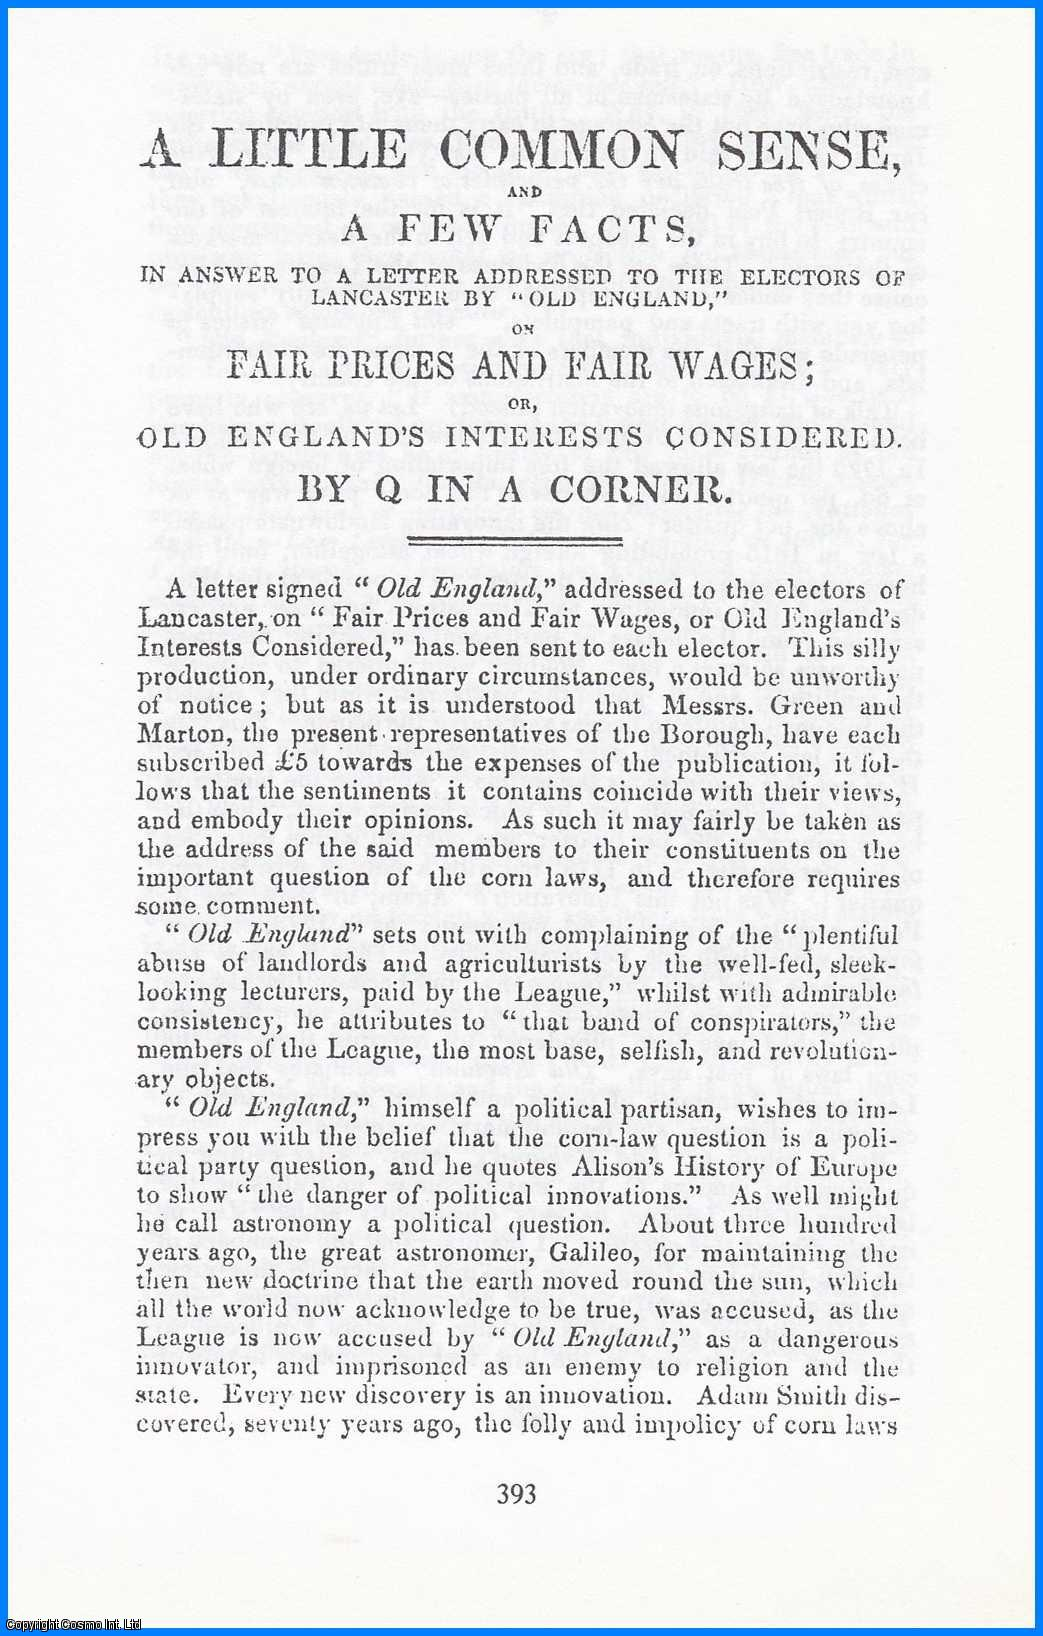 HARRIS, JOHN - [Corn Laws] A Little Common Sense, and a Few Facts, in Answer to a Letter Addressed to the Electors of Lancaster by 'Old England', on Fair Prices and Fair Wages; or, Old England's Interests considered by Q in a Corner. 1830. A disbound facsimile article from a larger volume.